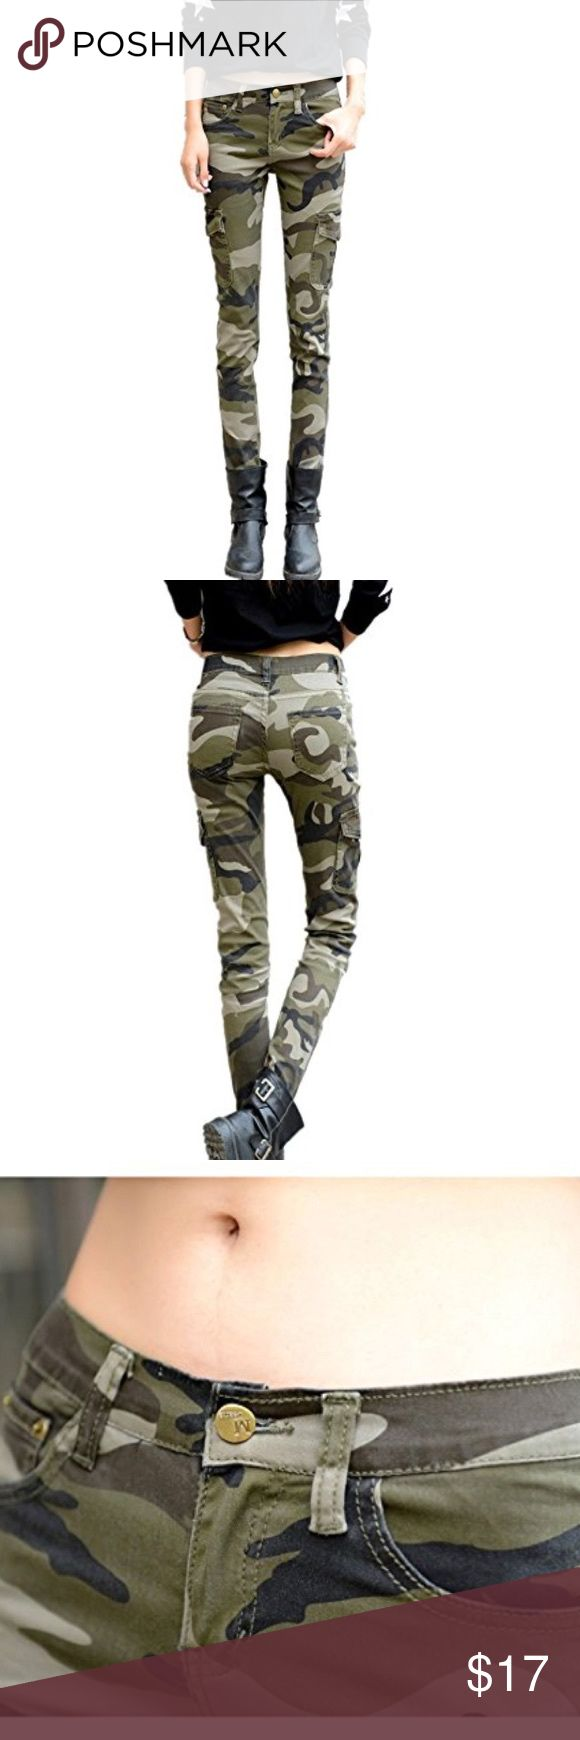 """NASKY's Women's Camo Army Slim Stretch Jeans """"Soft Stretch denim fabric printed with vintage camouflage  Featuring button fastening with 6 pockets front, back and leg. This Versatile piece is deal for everyday wear, with sandals, t-shirt and sunglasses for a laid back day look""""  Color: Camo Size: US 4 Condition: Like new / Only worn once   Pants turned out to be super comfortable and good quality fabric. I was pleasantly surprised with it having purchased it off Amazon for the first time…"""